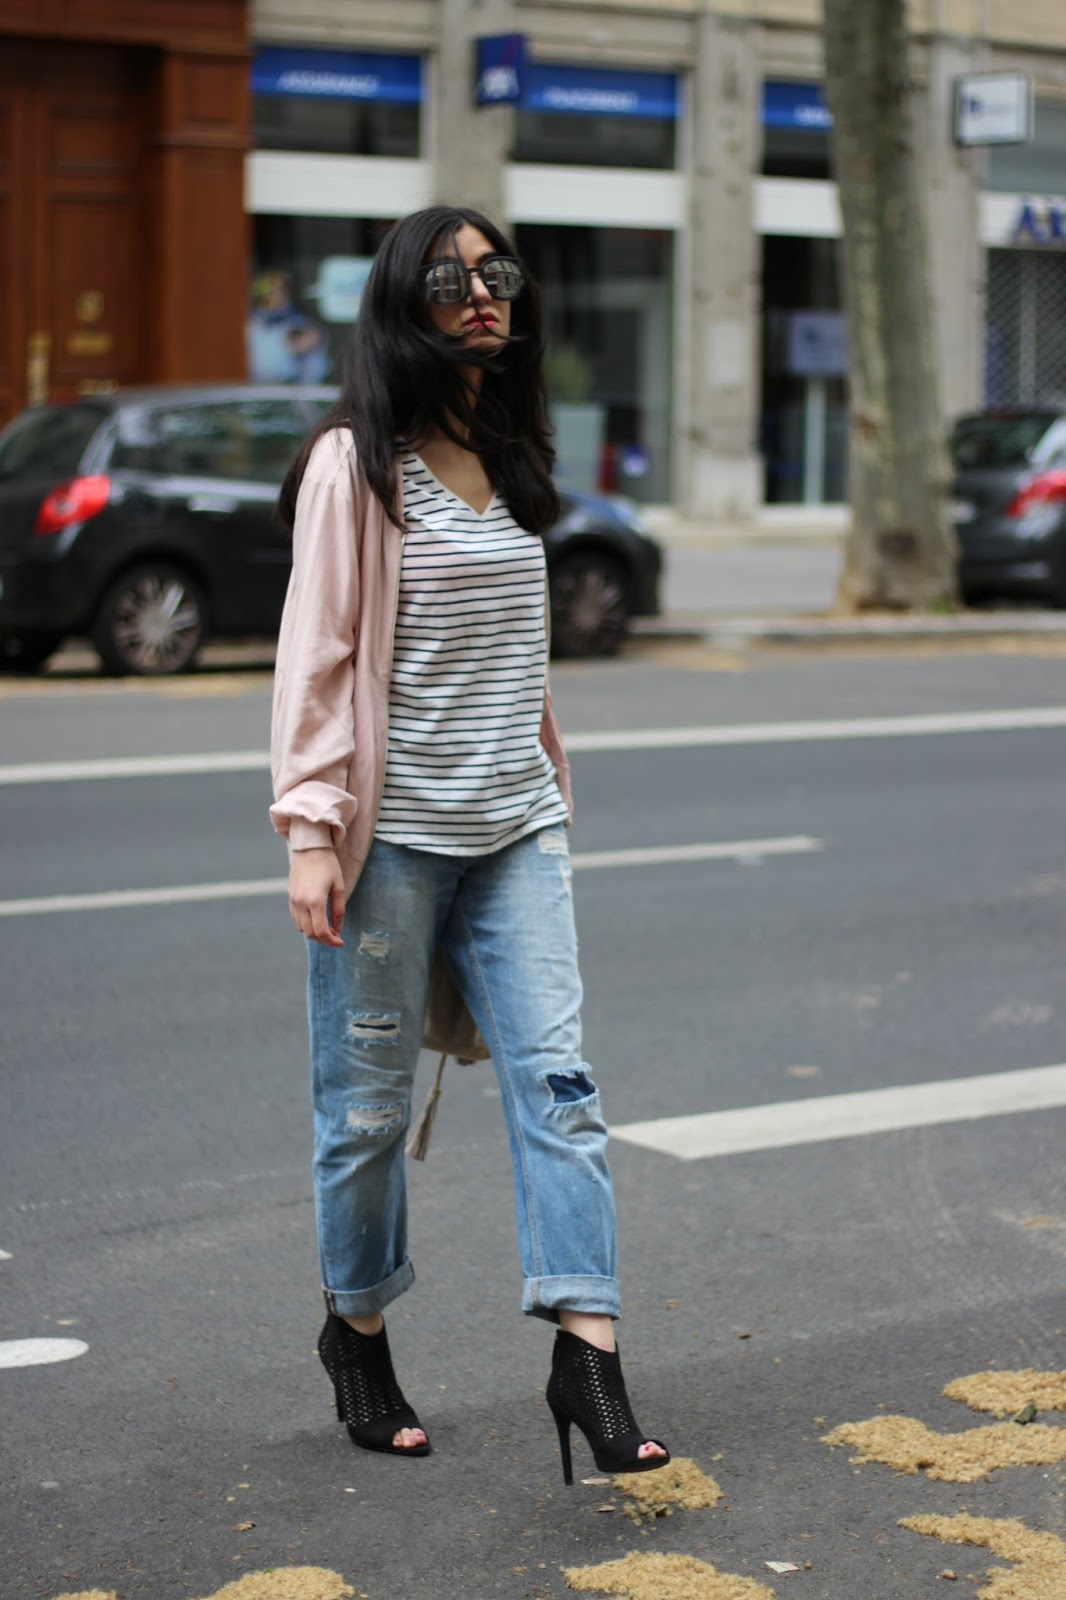 blog mode, blog mode lyon, blog mode lyon paris, blog mode paris, bomber rose, marinière, grain de malice, new look, discoverss16, bomber, boyfriend, modeuse, blogueuse mode, fblogger, blogueuse à lyon, jimmy fairly